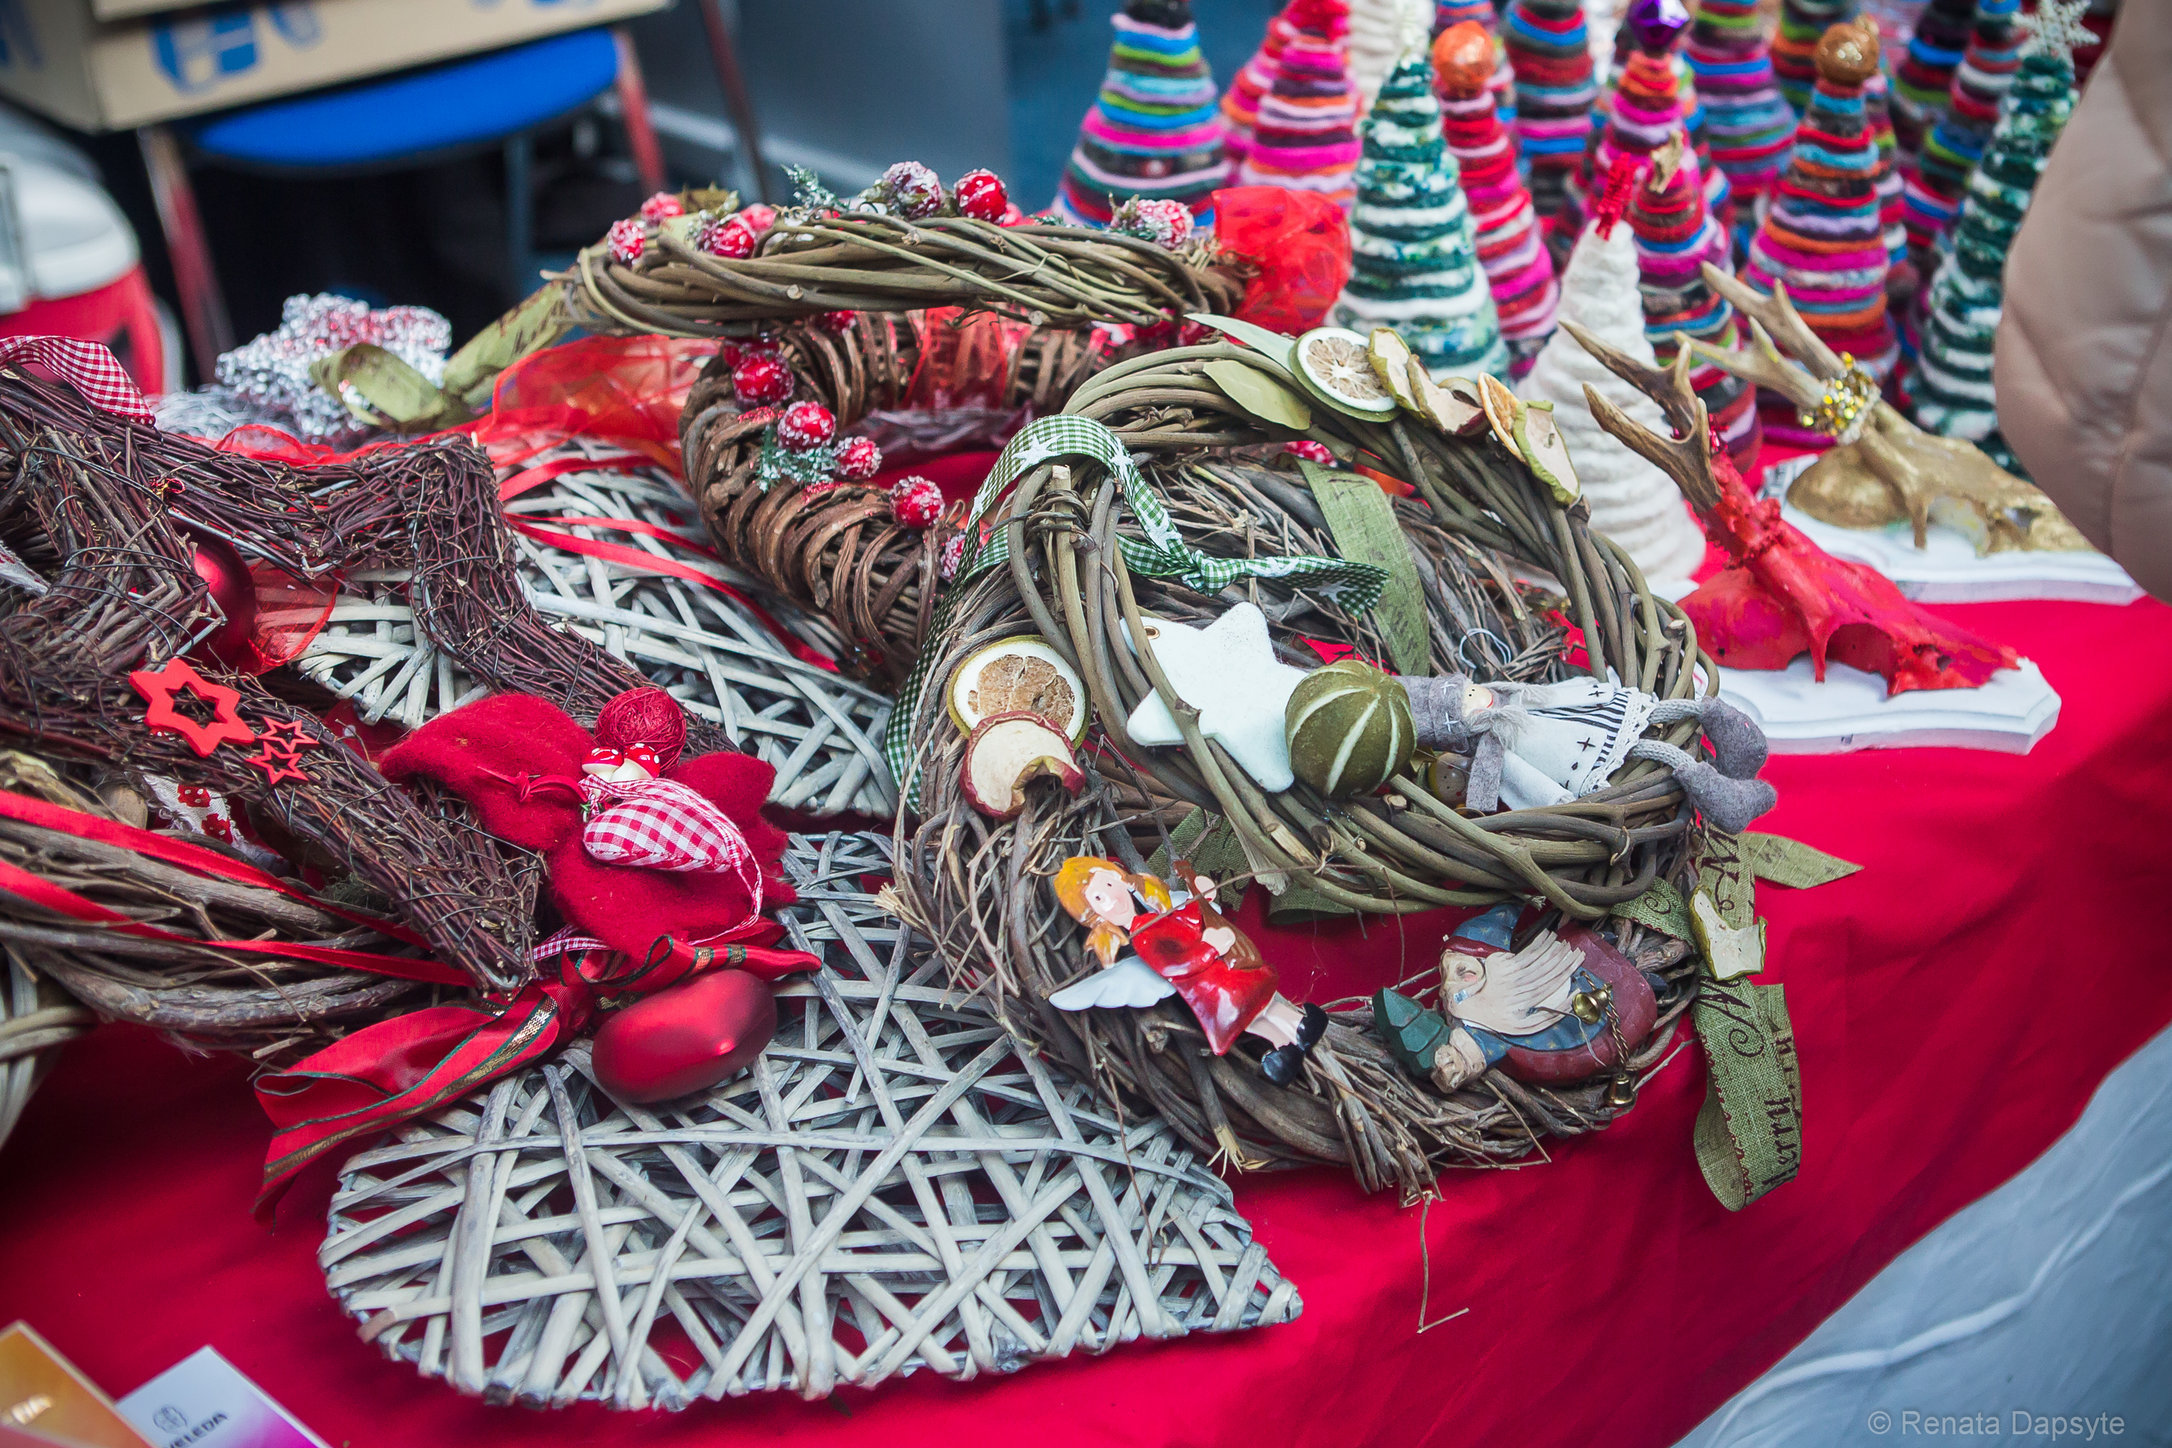 042_International Charity Bazaar Dublin 2013.JPG